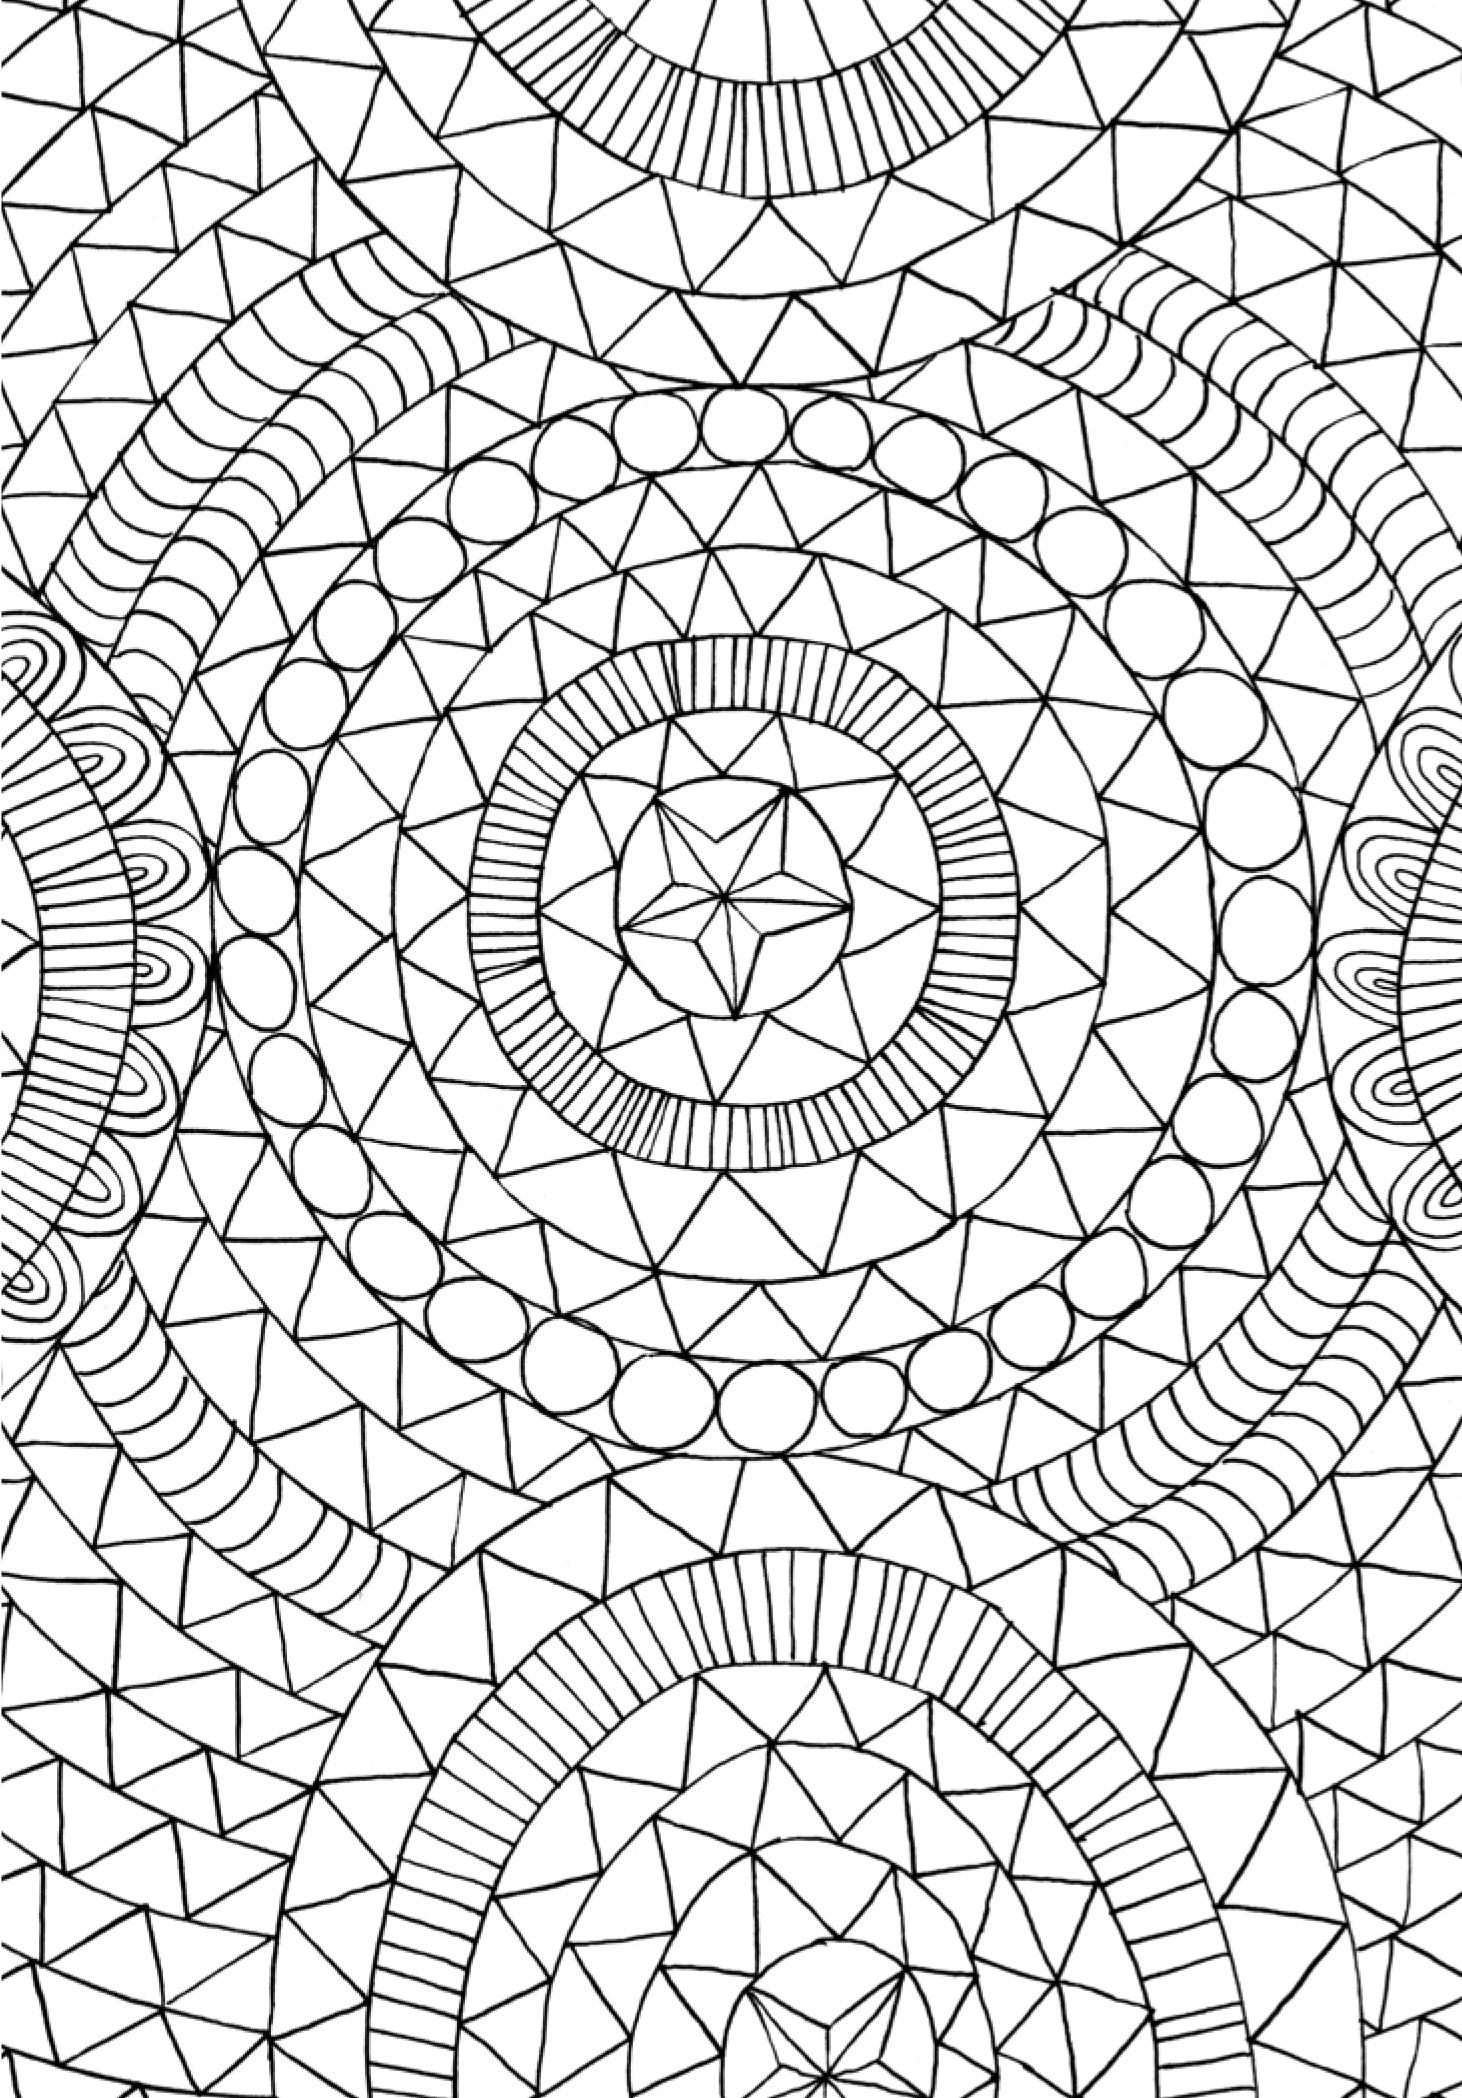 find this pin and more on coloringprintingdrawingpainting pagestattoos by jlsandvig1 - Pattern Coloring Books